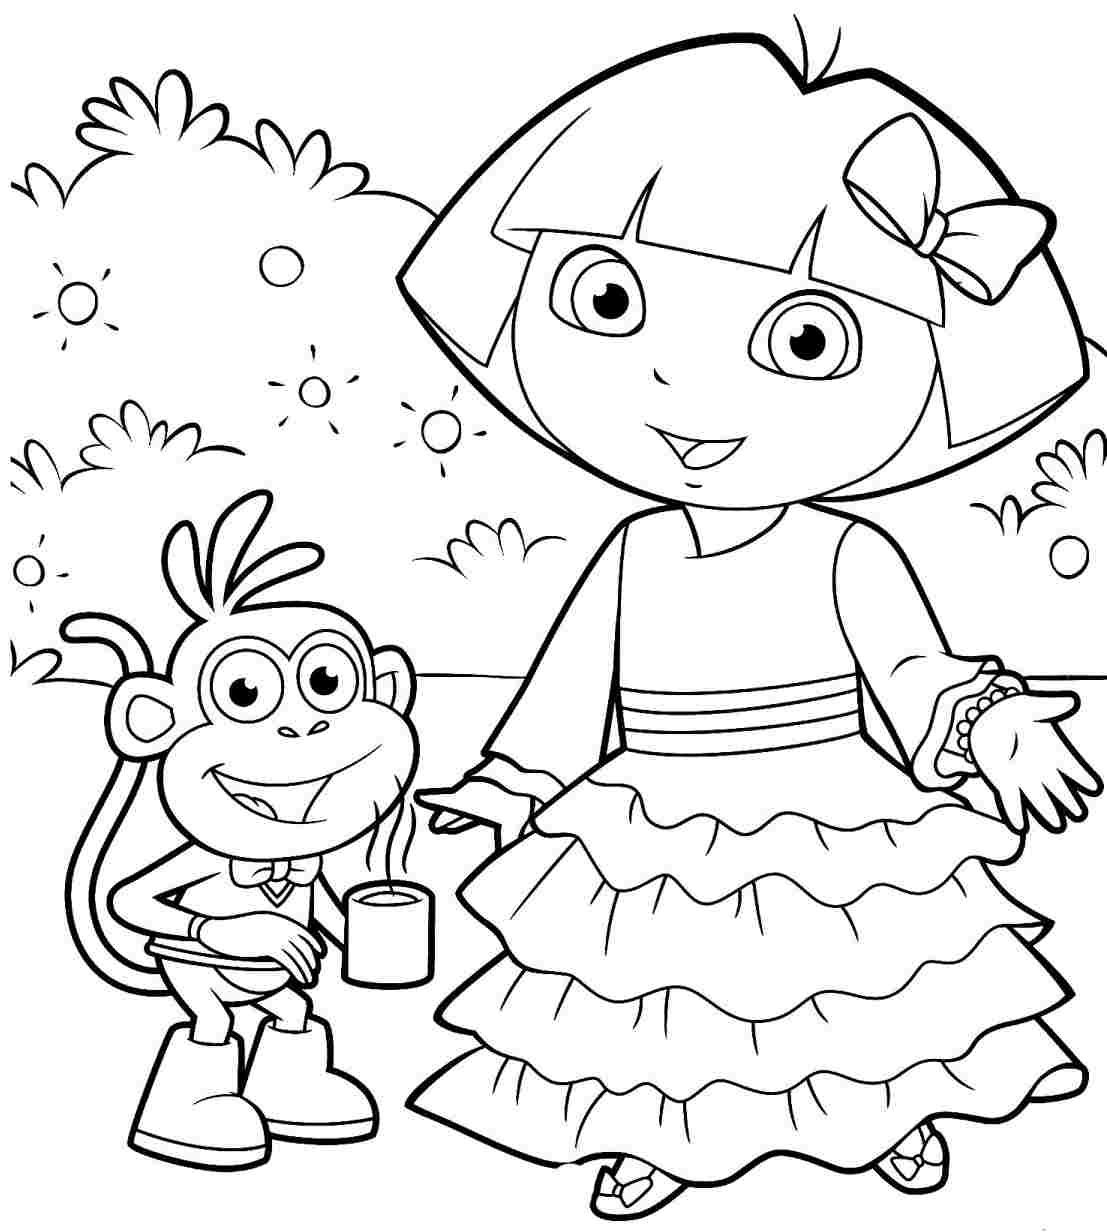 printable dora pictures free printable dora coloring pages for kids cool2bkids printable dora pictures